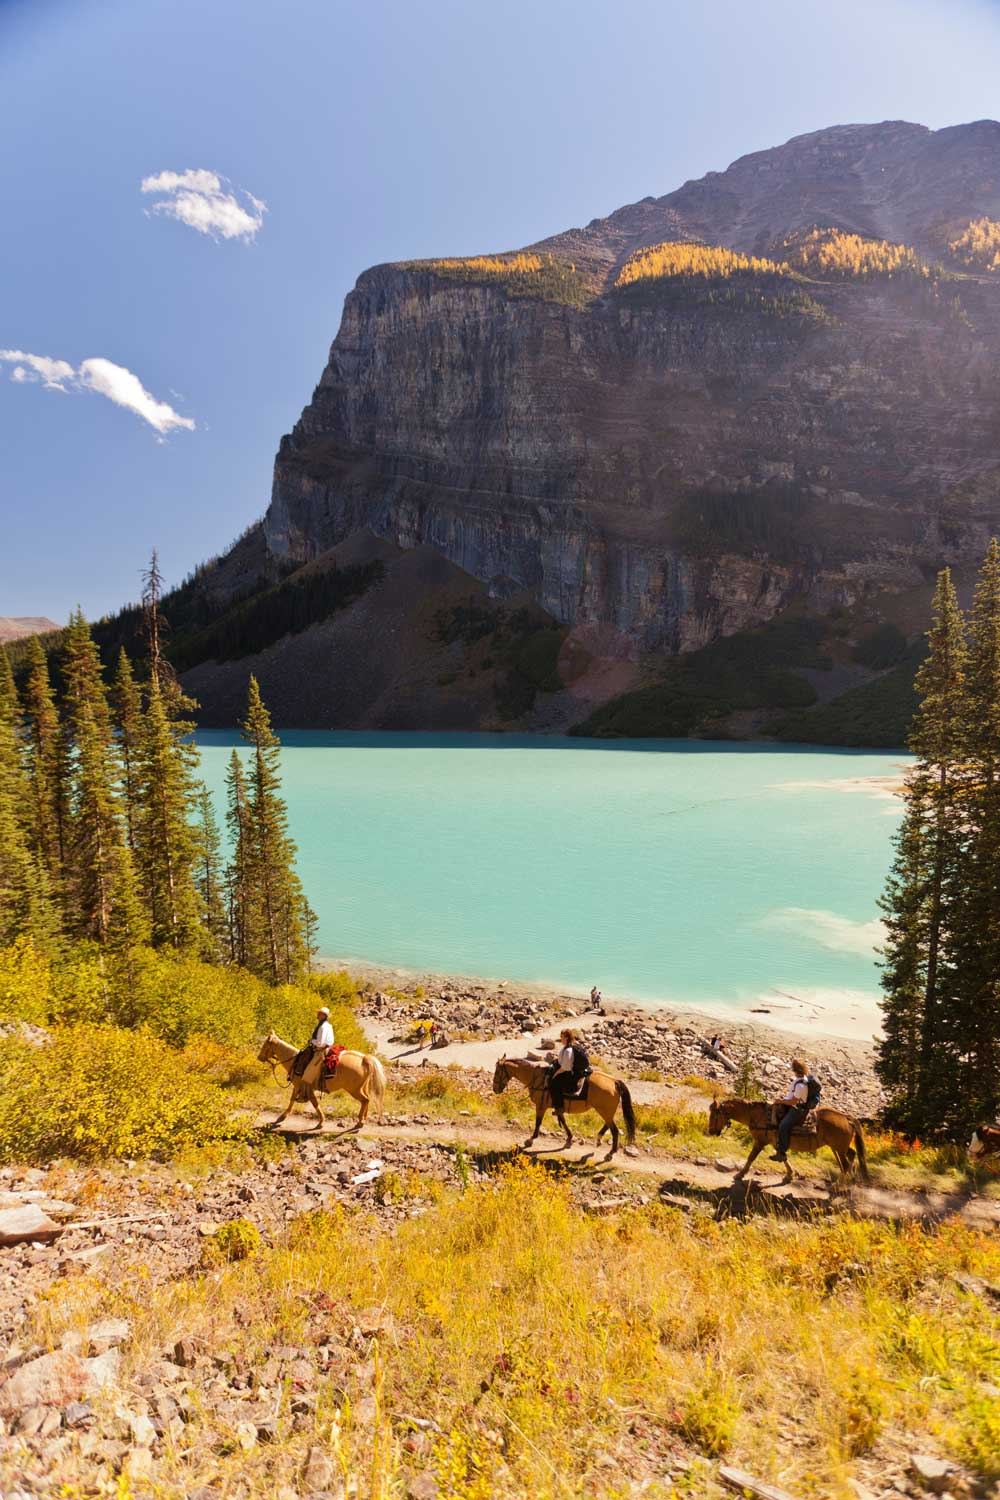 Horseback_Riding_Lake_Louise_Plain_Of_Six_Glaciers_Tea_House_Paul_Zizka_7_Vertical1500-1000.jpg